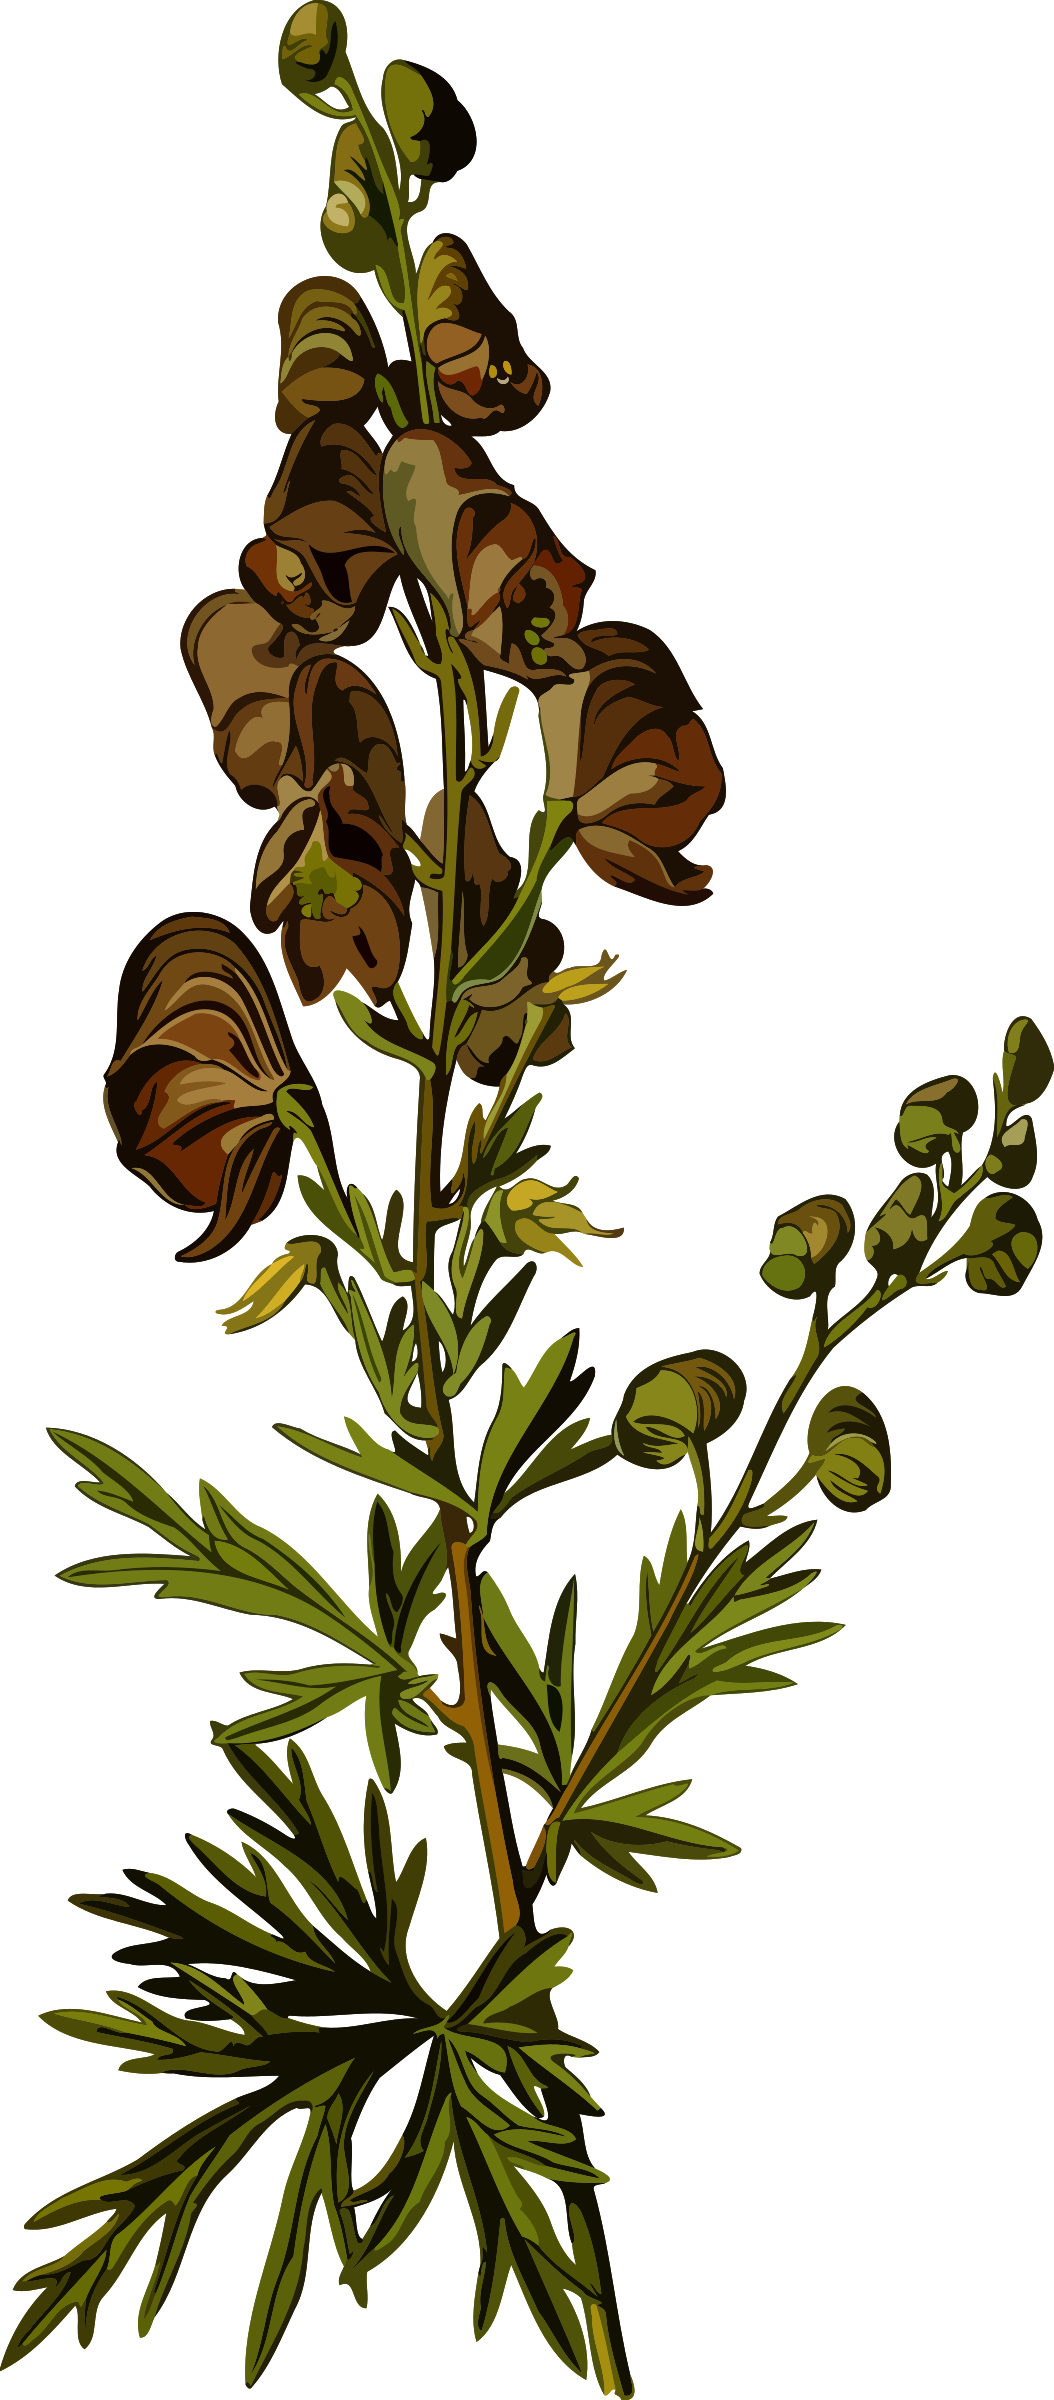 Wolfsbane (smaller file) by Firkin